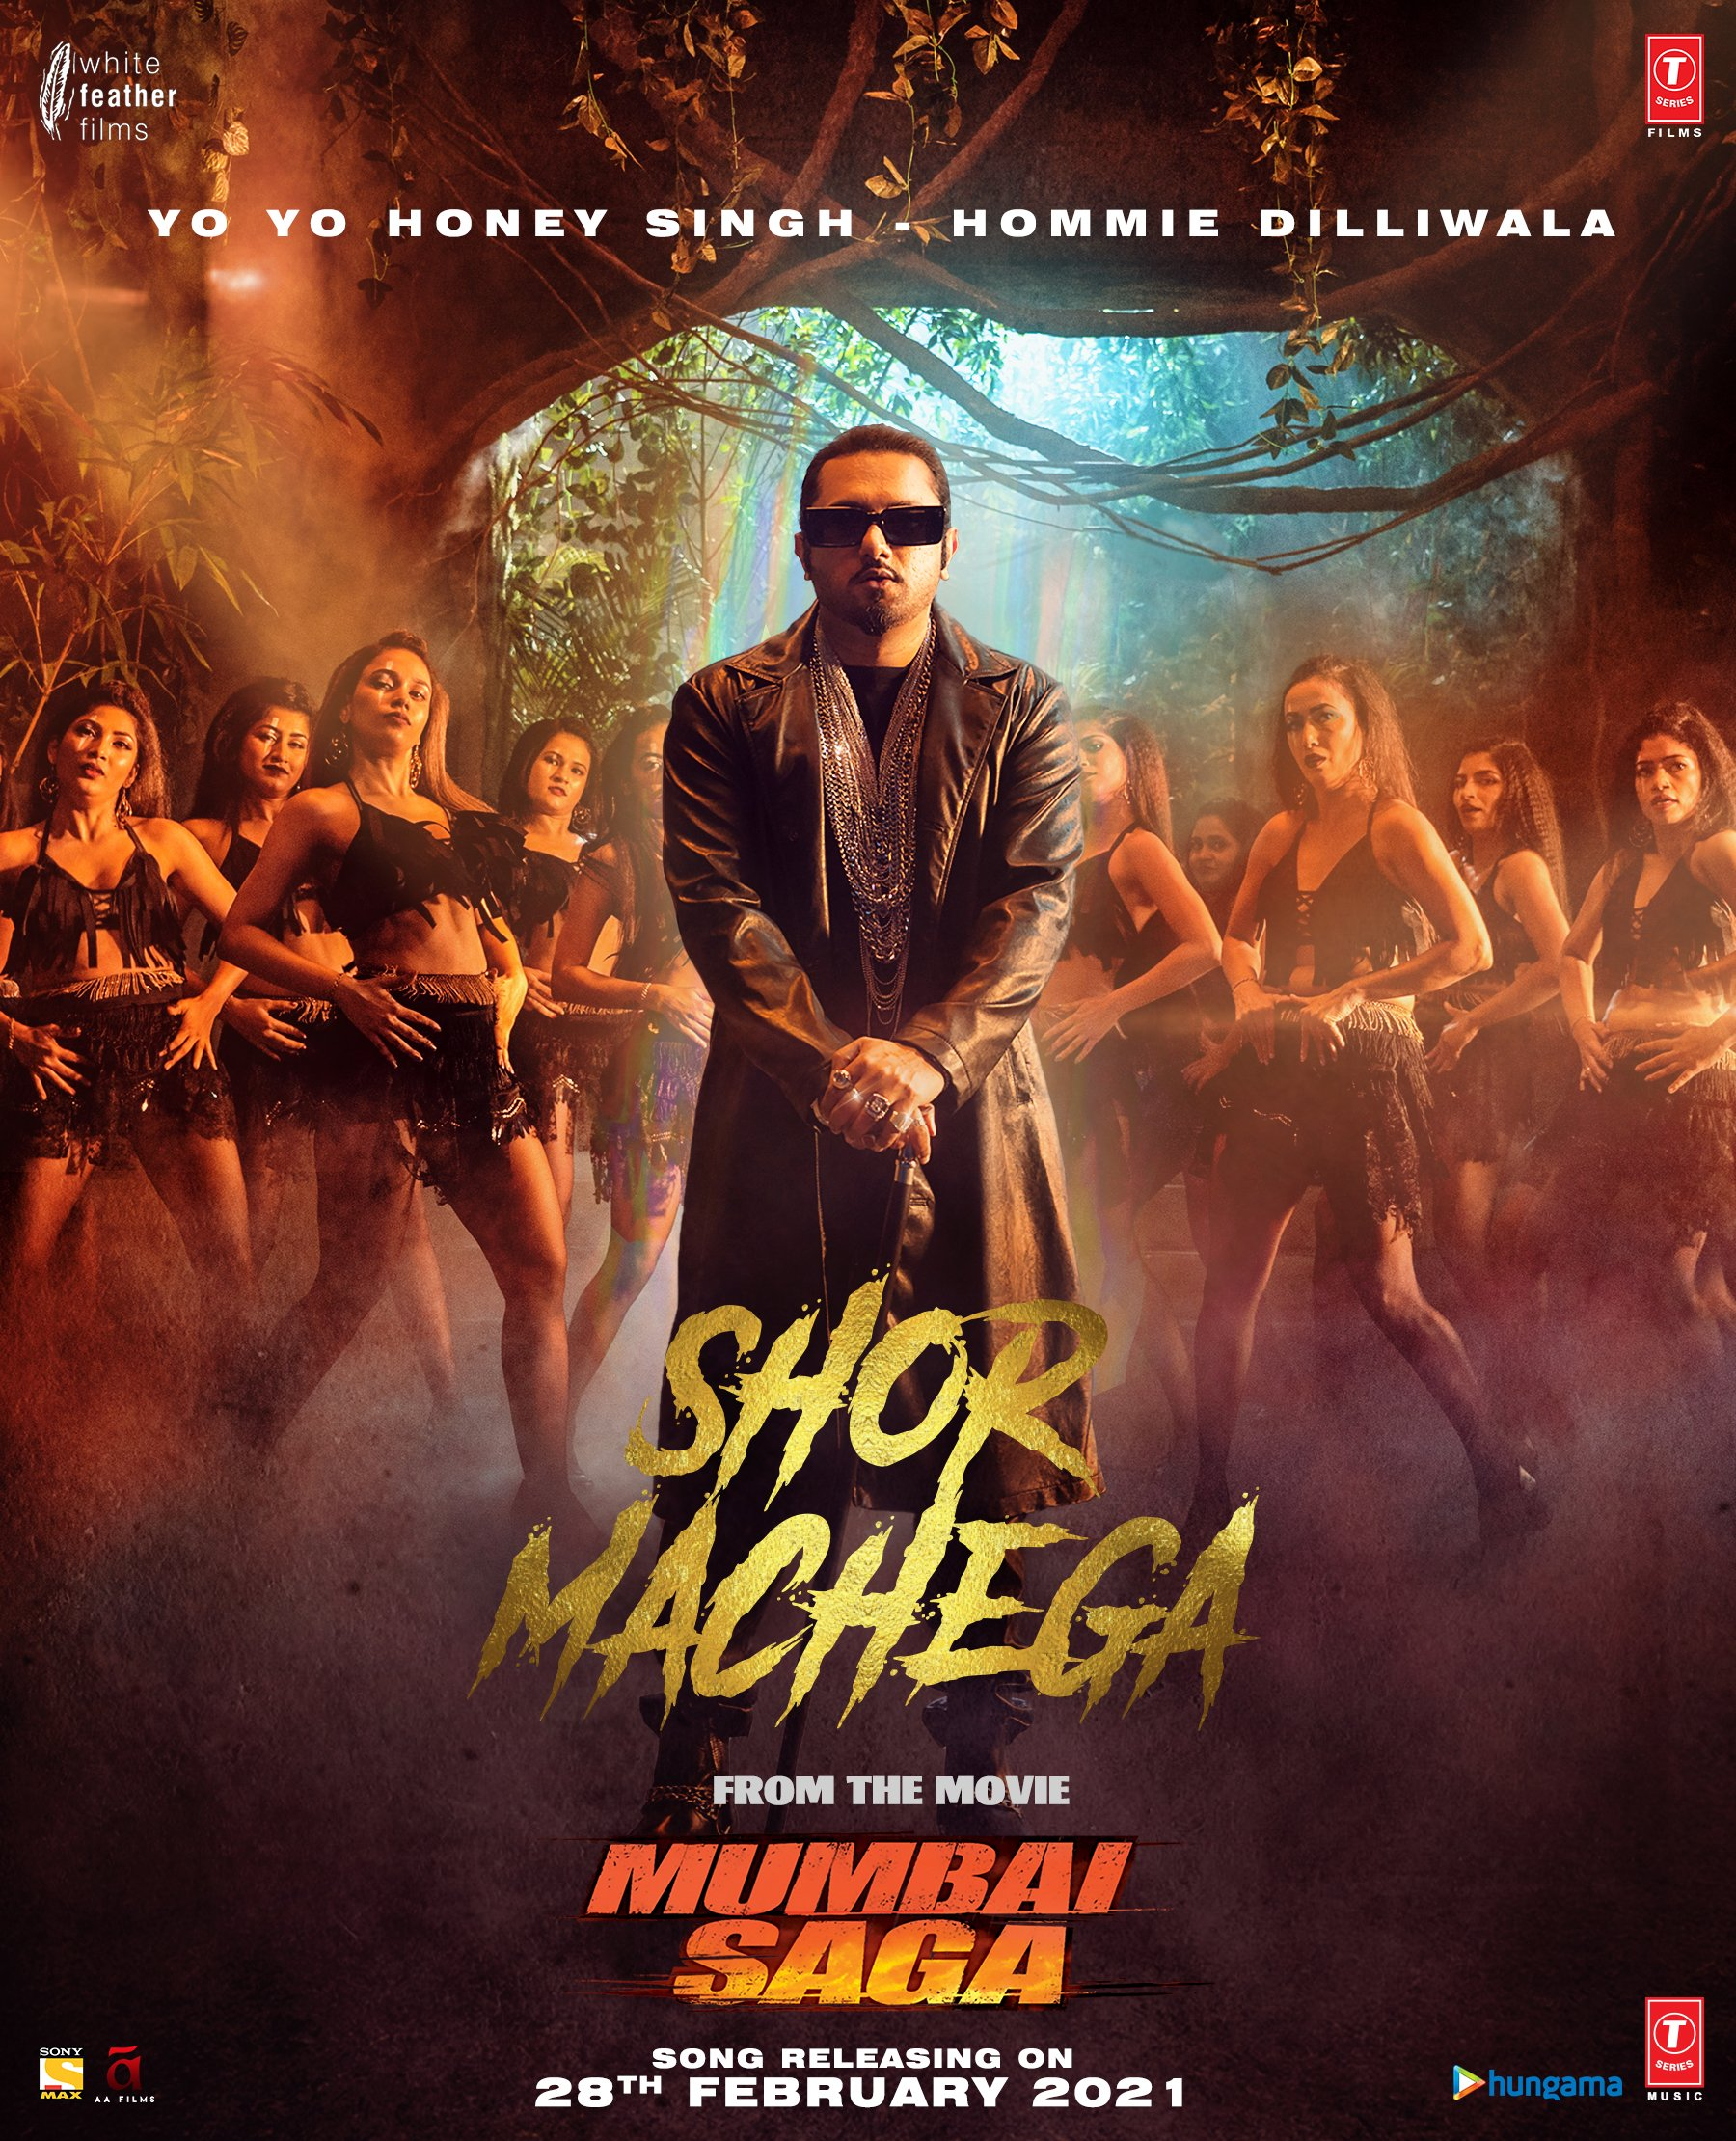 Shor Machega (Mumbai Saga) 2021 By Yo Yo Honey Singh Hindi Video Song 1080p HDRip Download